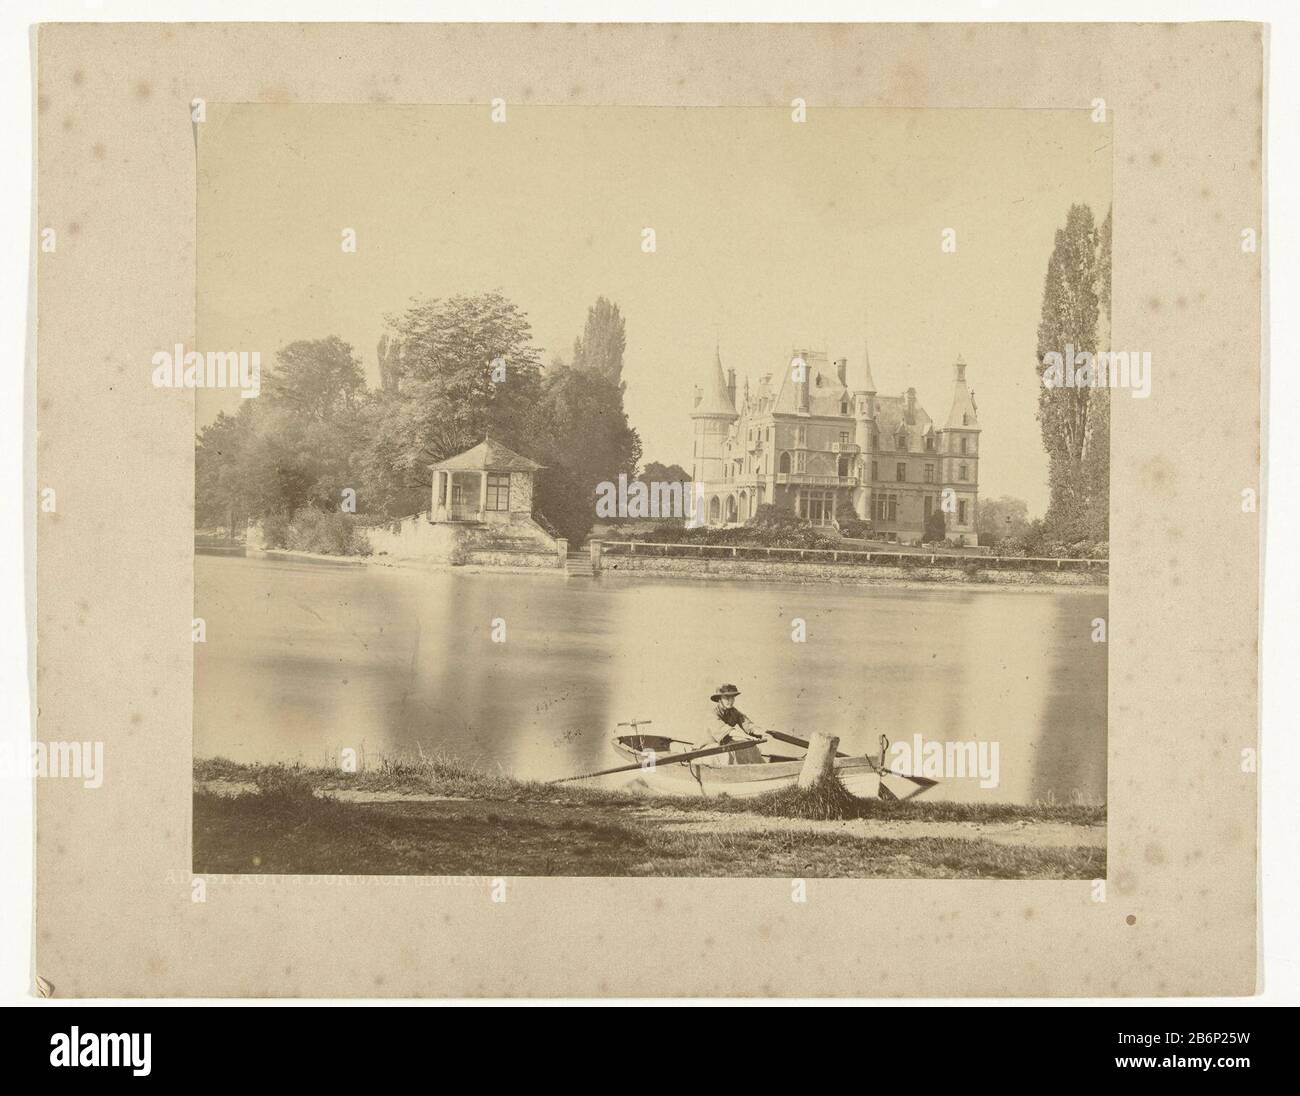 "Gezicht een landhuis, een rivier en een roeiboot met daarin een vrouw View of a country house, a river and a row boat containing a female object type: picture Item number: RP-F 2002-80 Inscriptions / Brands: signature, recto, printed: ""AD. BRAUN à DORNACH (Haute-Rhin) Manufacture Creator: photographer Adolphe Braun et Cie (listed property) Place manufacture: Dornach Dating 1865 - 1885 Physical features: albumen print material: paper paper cardboard Technique: albumen print dimensions: photo: H 159 mm × W 189 mmblad : h 200 mm × W 252 mm Subject: rowing-boat, canoe, and etc. Stock Photo"